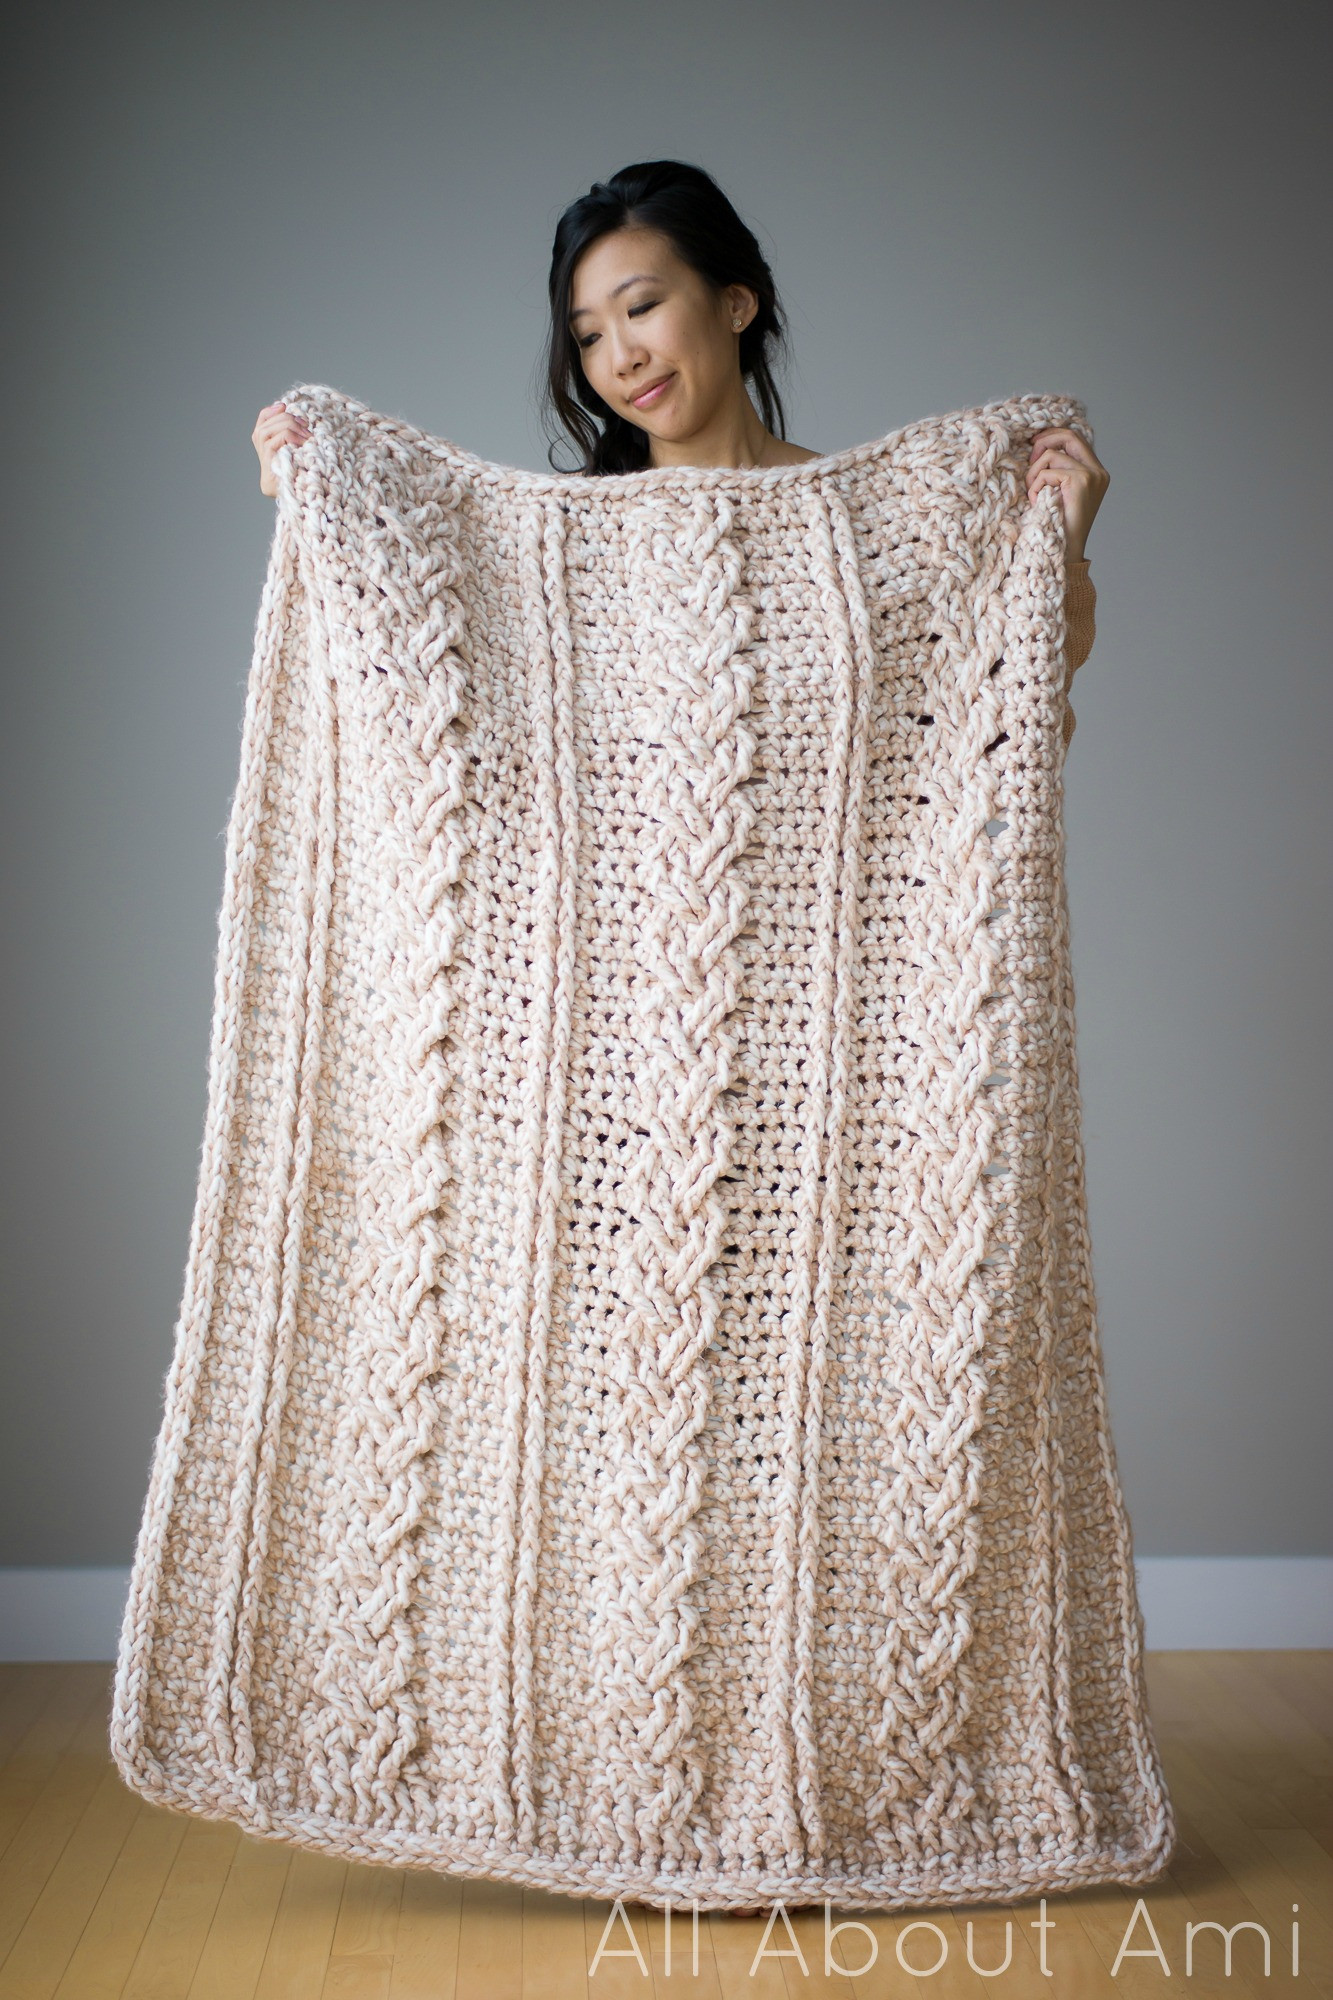 Lovely Chunky Braided Cabled Blanket All About Ami Chunky Cable Knit Throw Of New 48 Images Chunky Cable Knit Throw